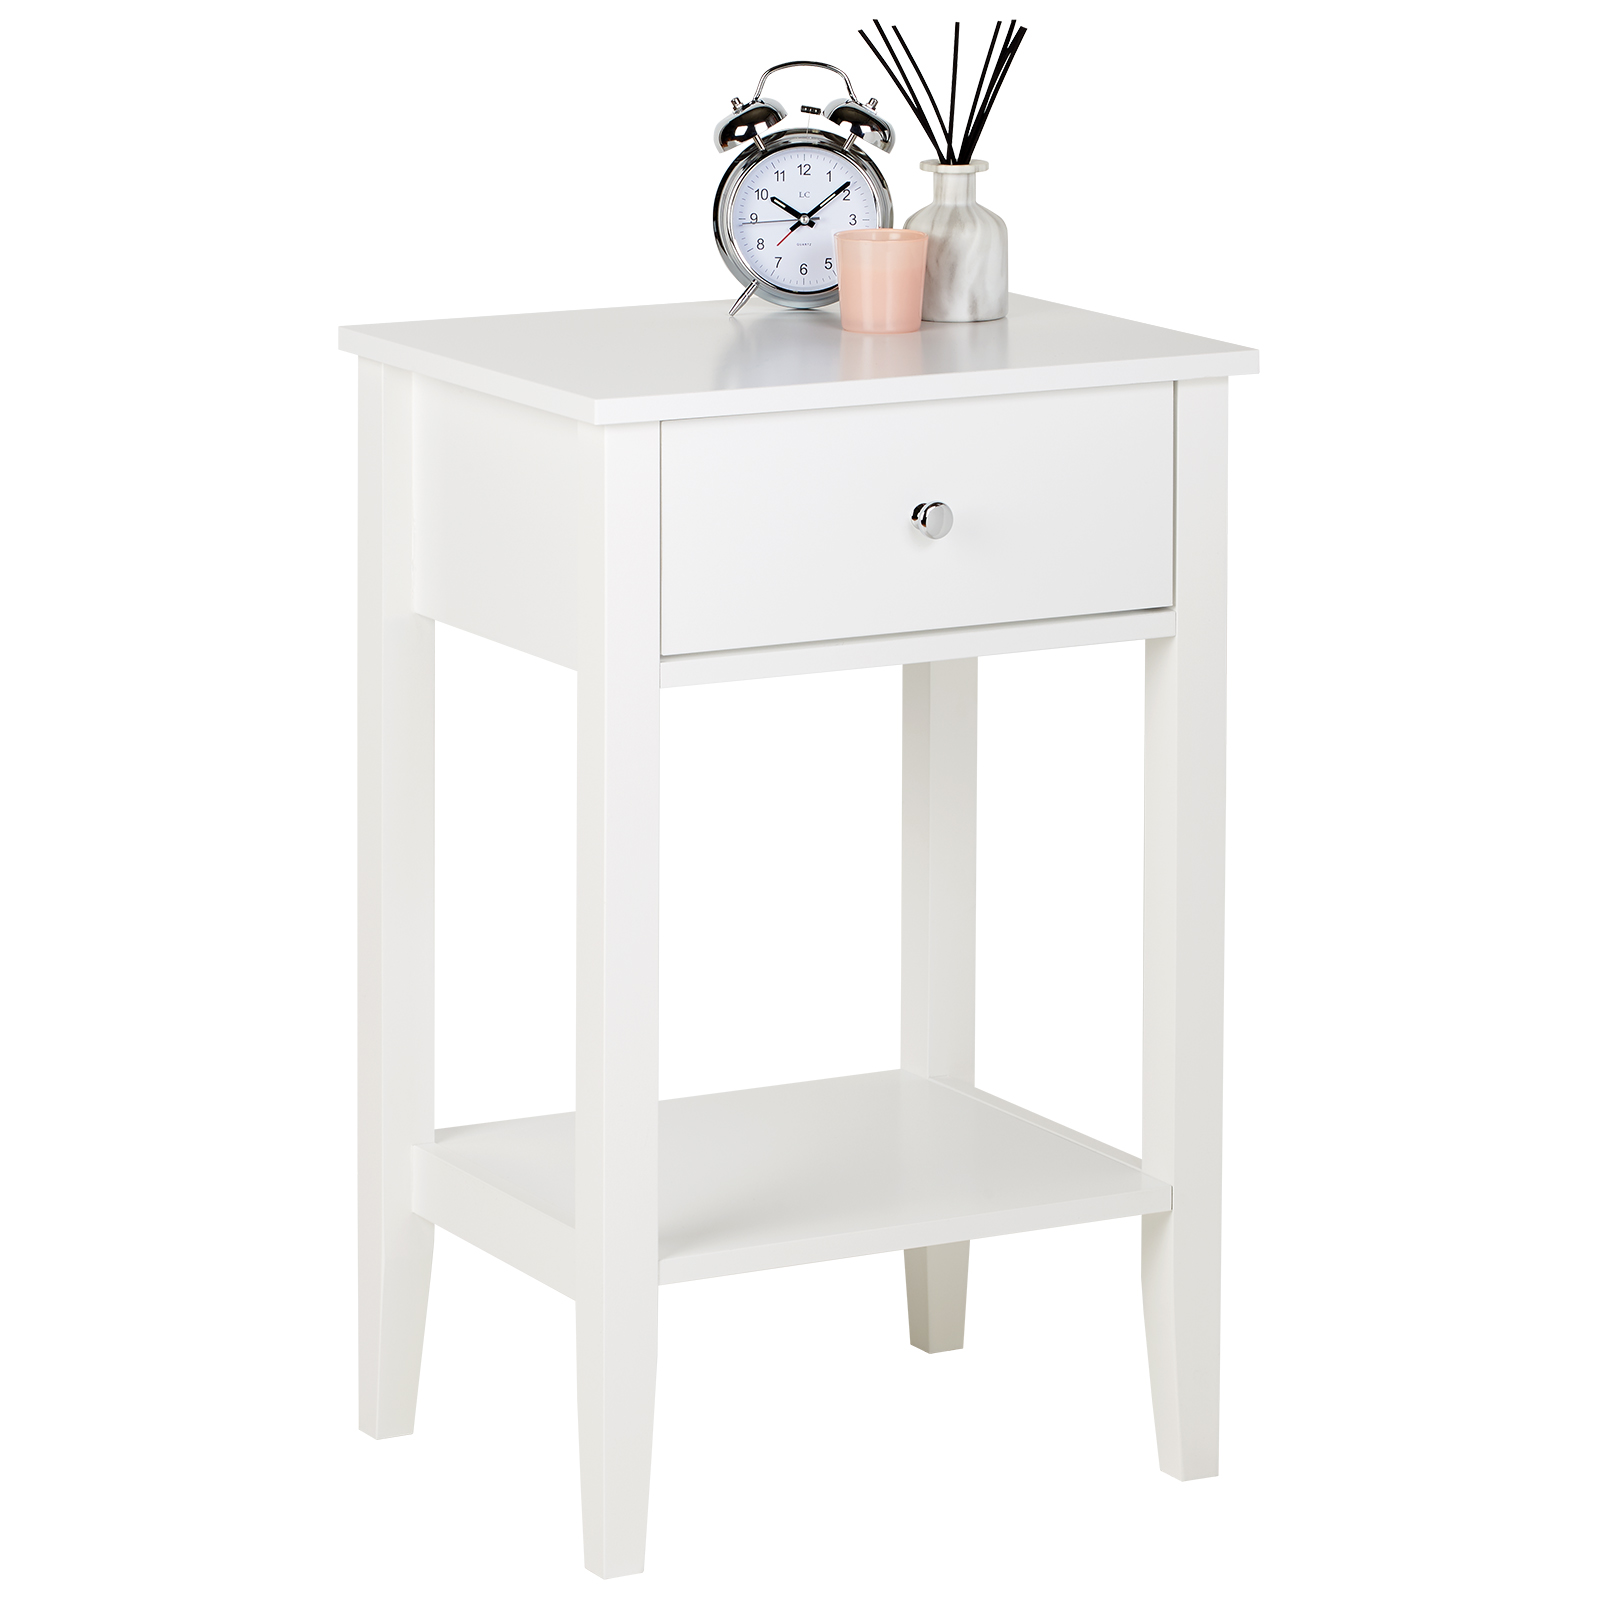 finest selection f3583 1954c Details about Hartleys White & Chrome Bedside Side Table Bedroom/Living  Room Nightstand Bed